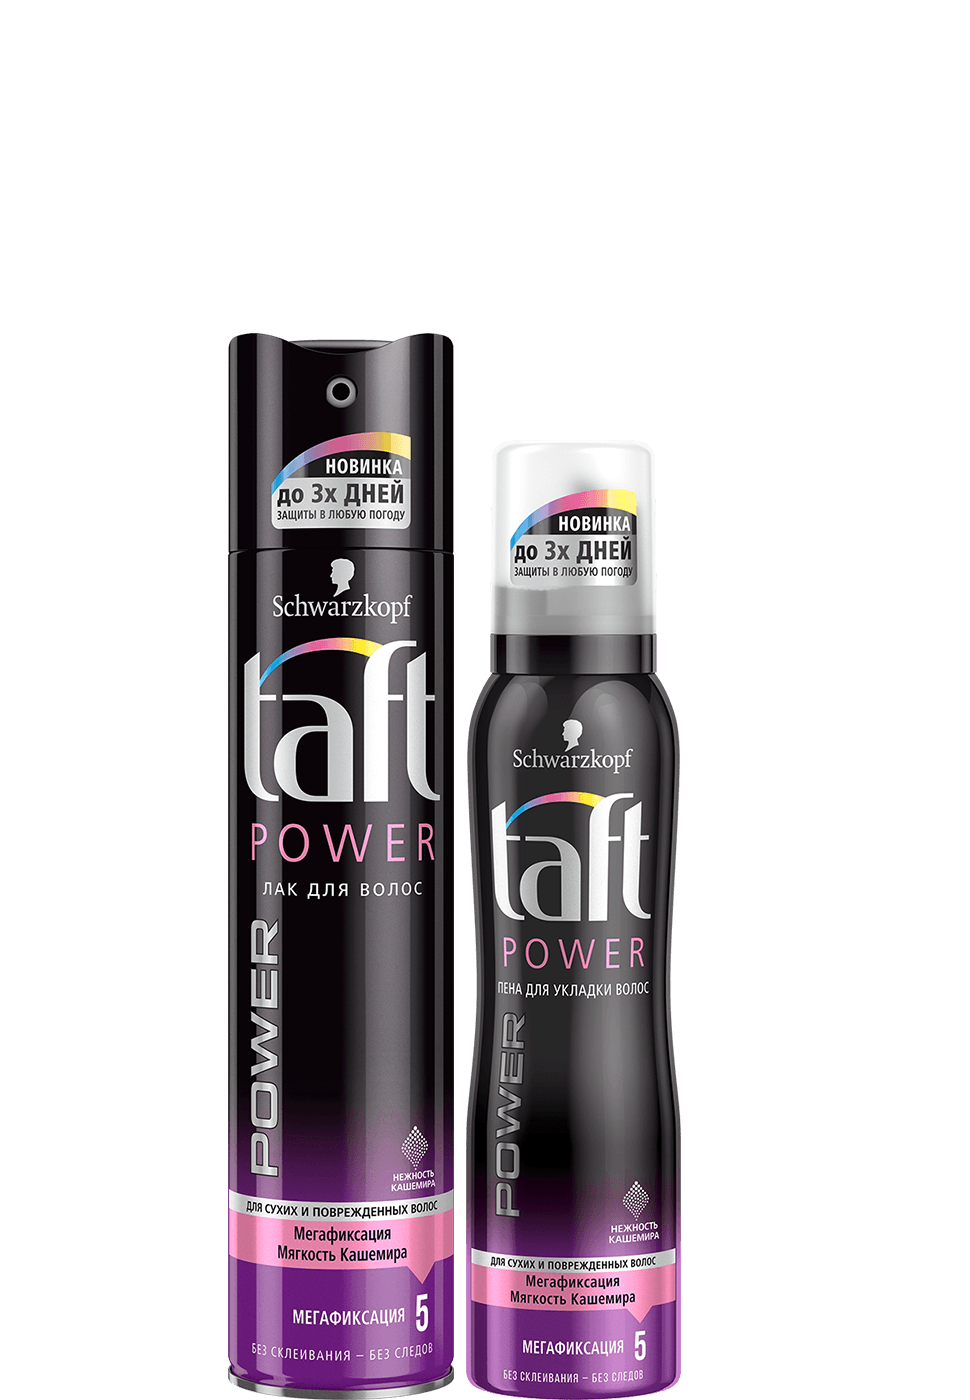 taft_ru_power_home_pack_970x1400